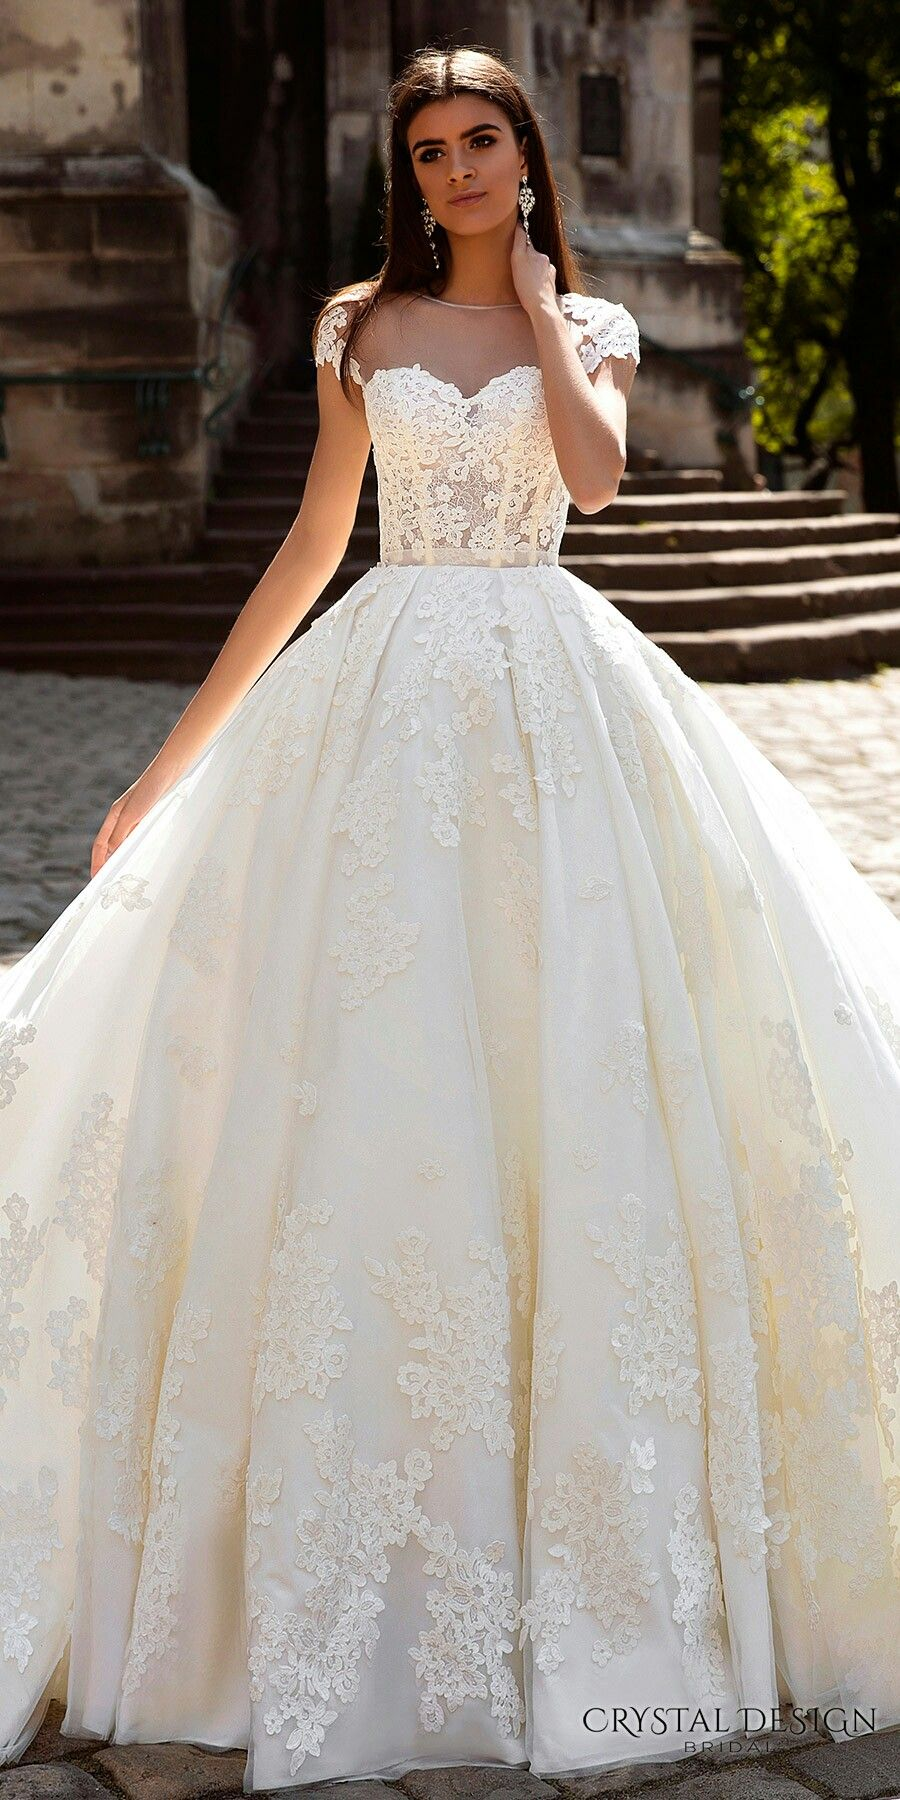 Crystal Design 2016 Collection Ball Gowns Wedding Wedding